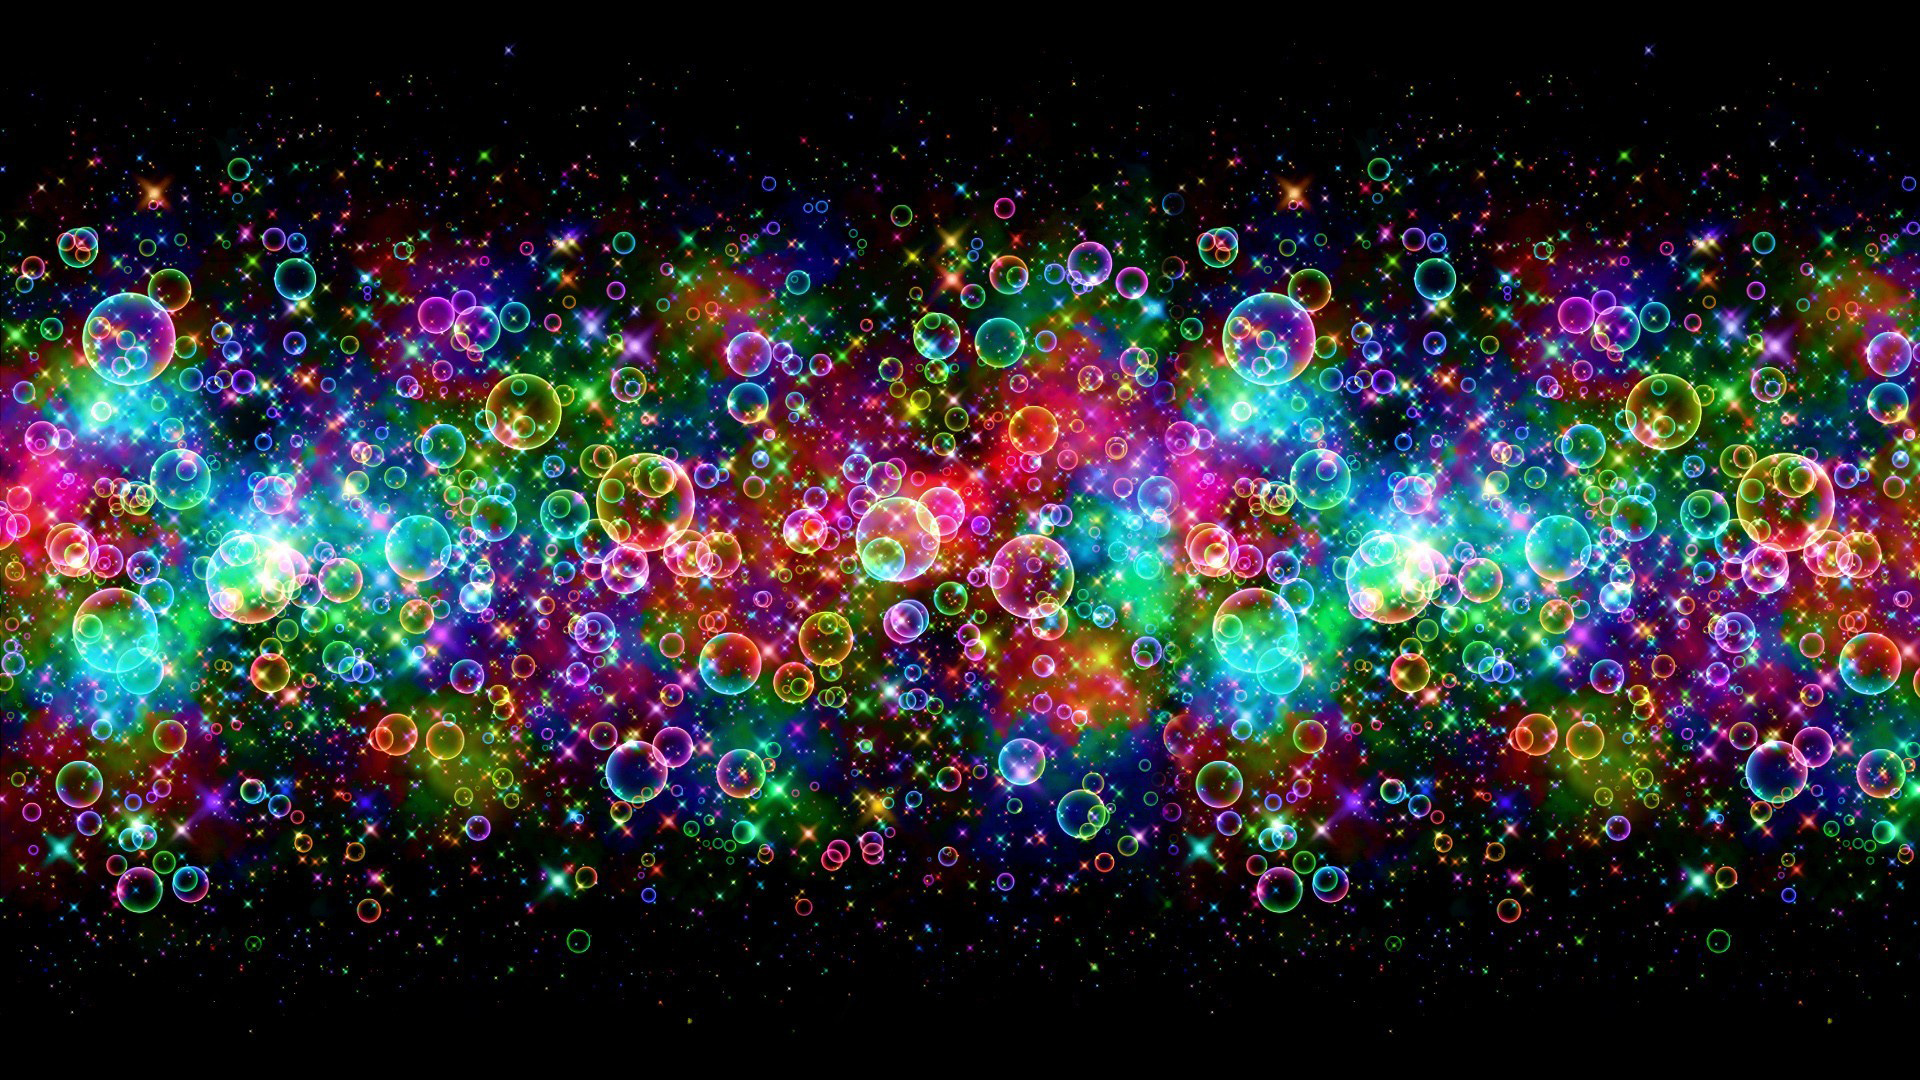 Abstract-02/Colorful Bubbles HD.jpg Desktop